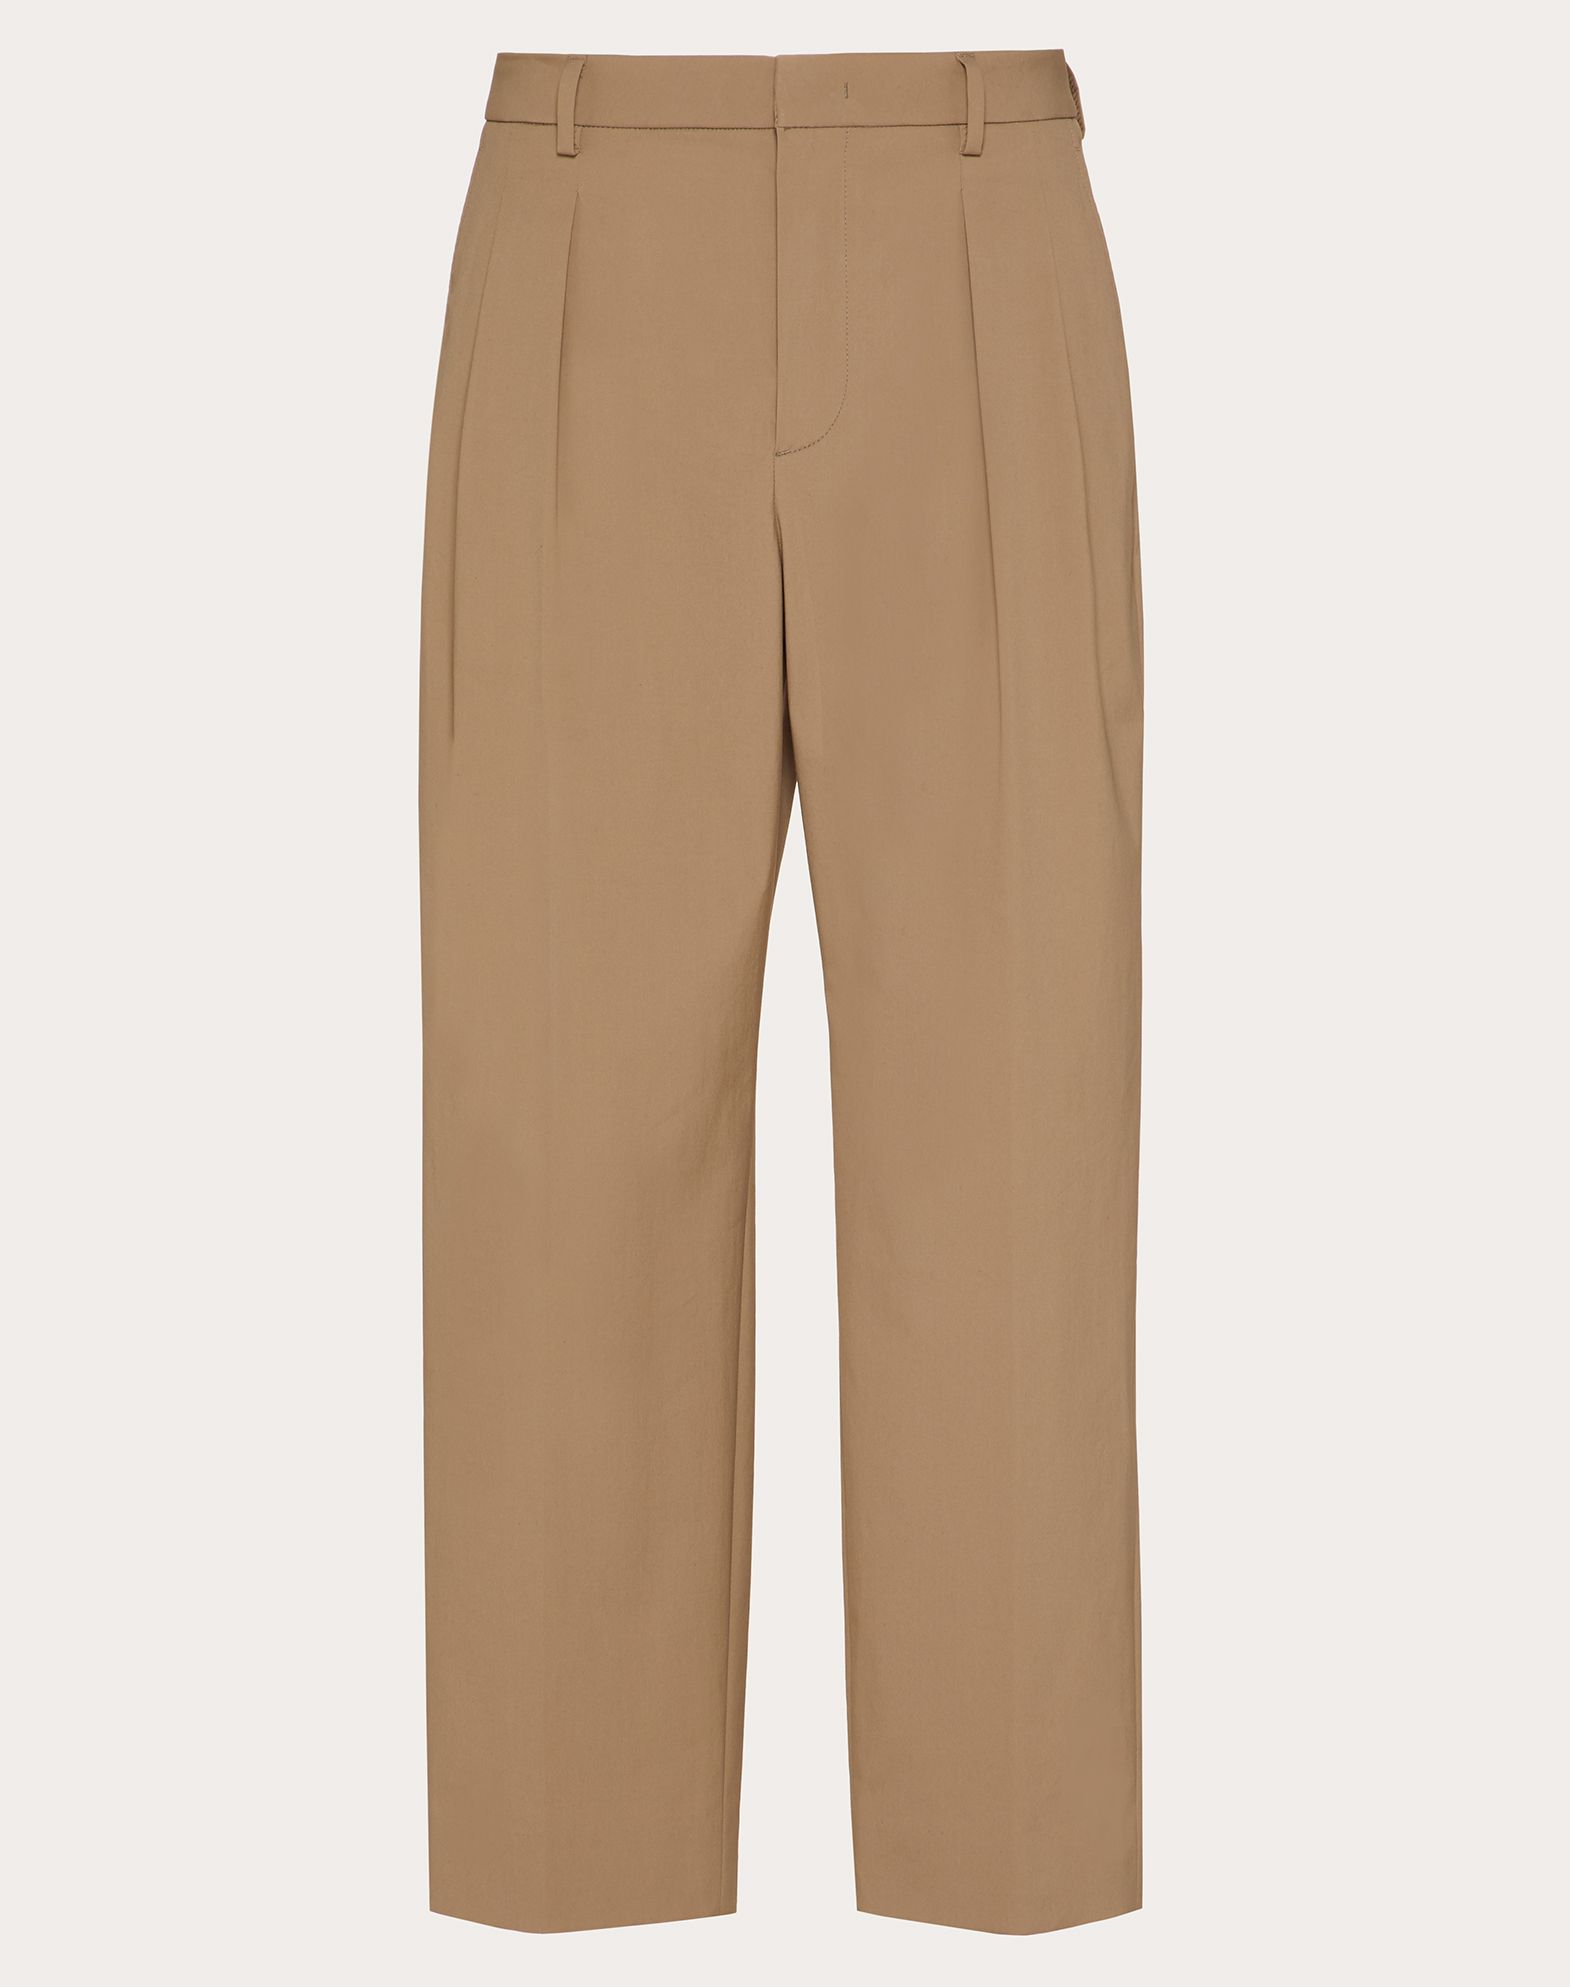 TWIN PLEAT PANTS